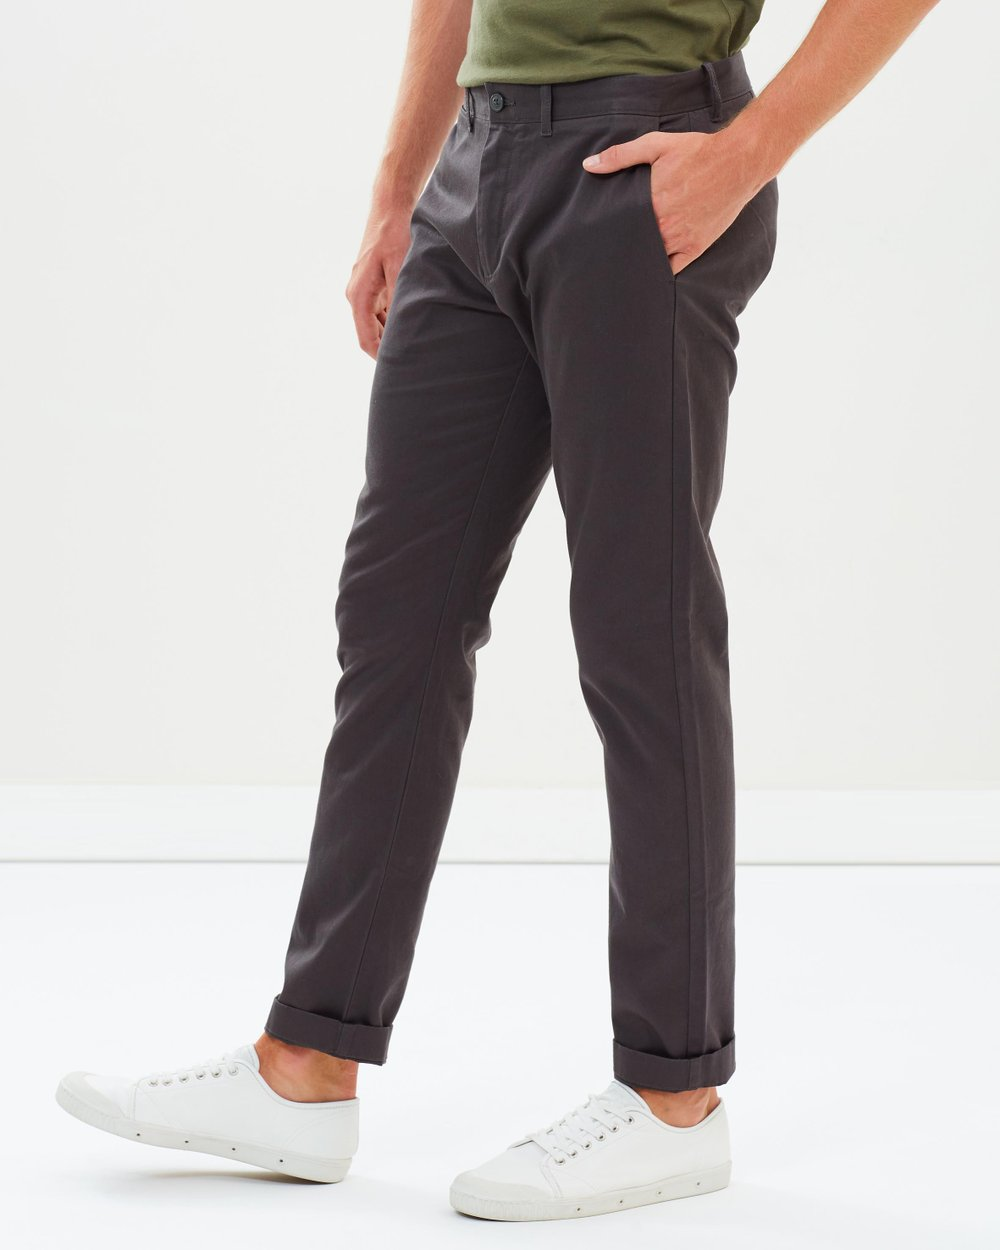 62079c5e3a1e 484 Slim-Fit Stretch Chino Pants by J.Crew Online